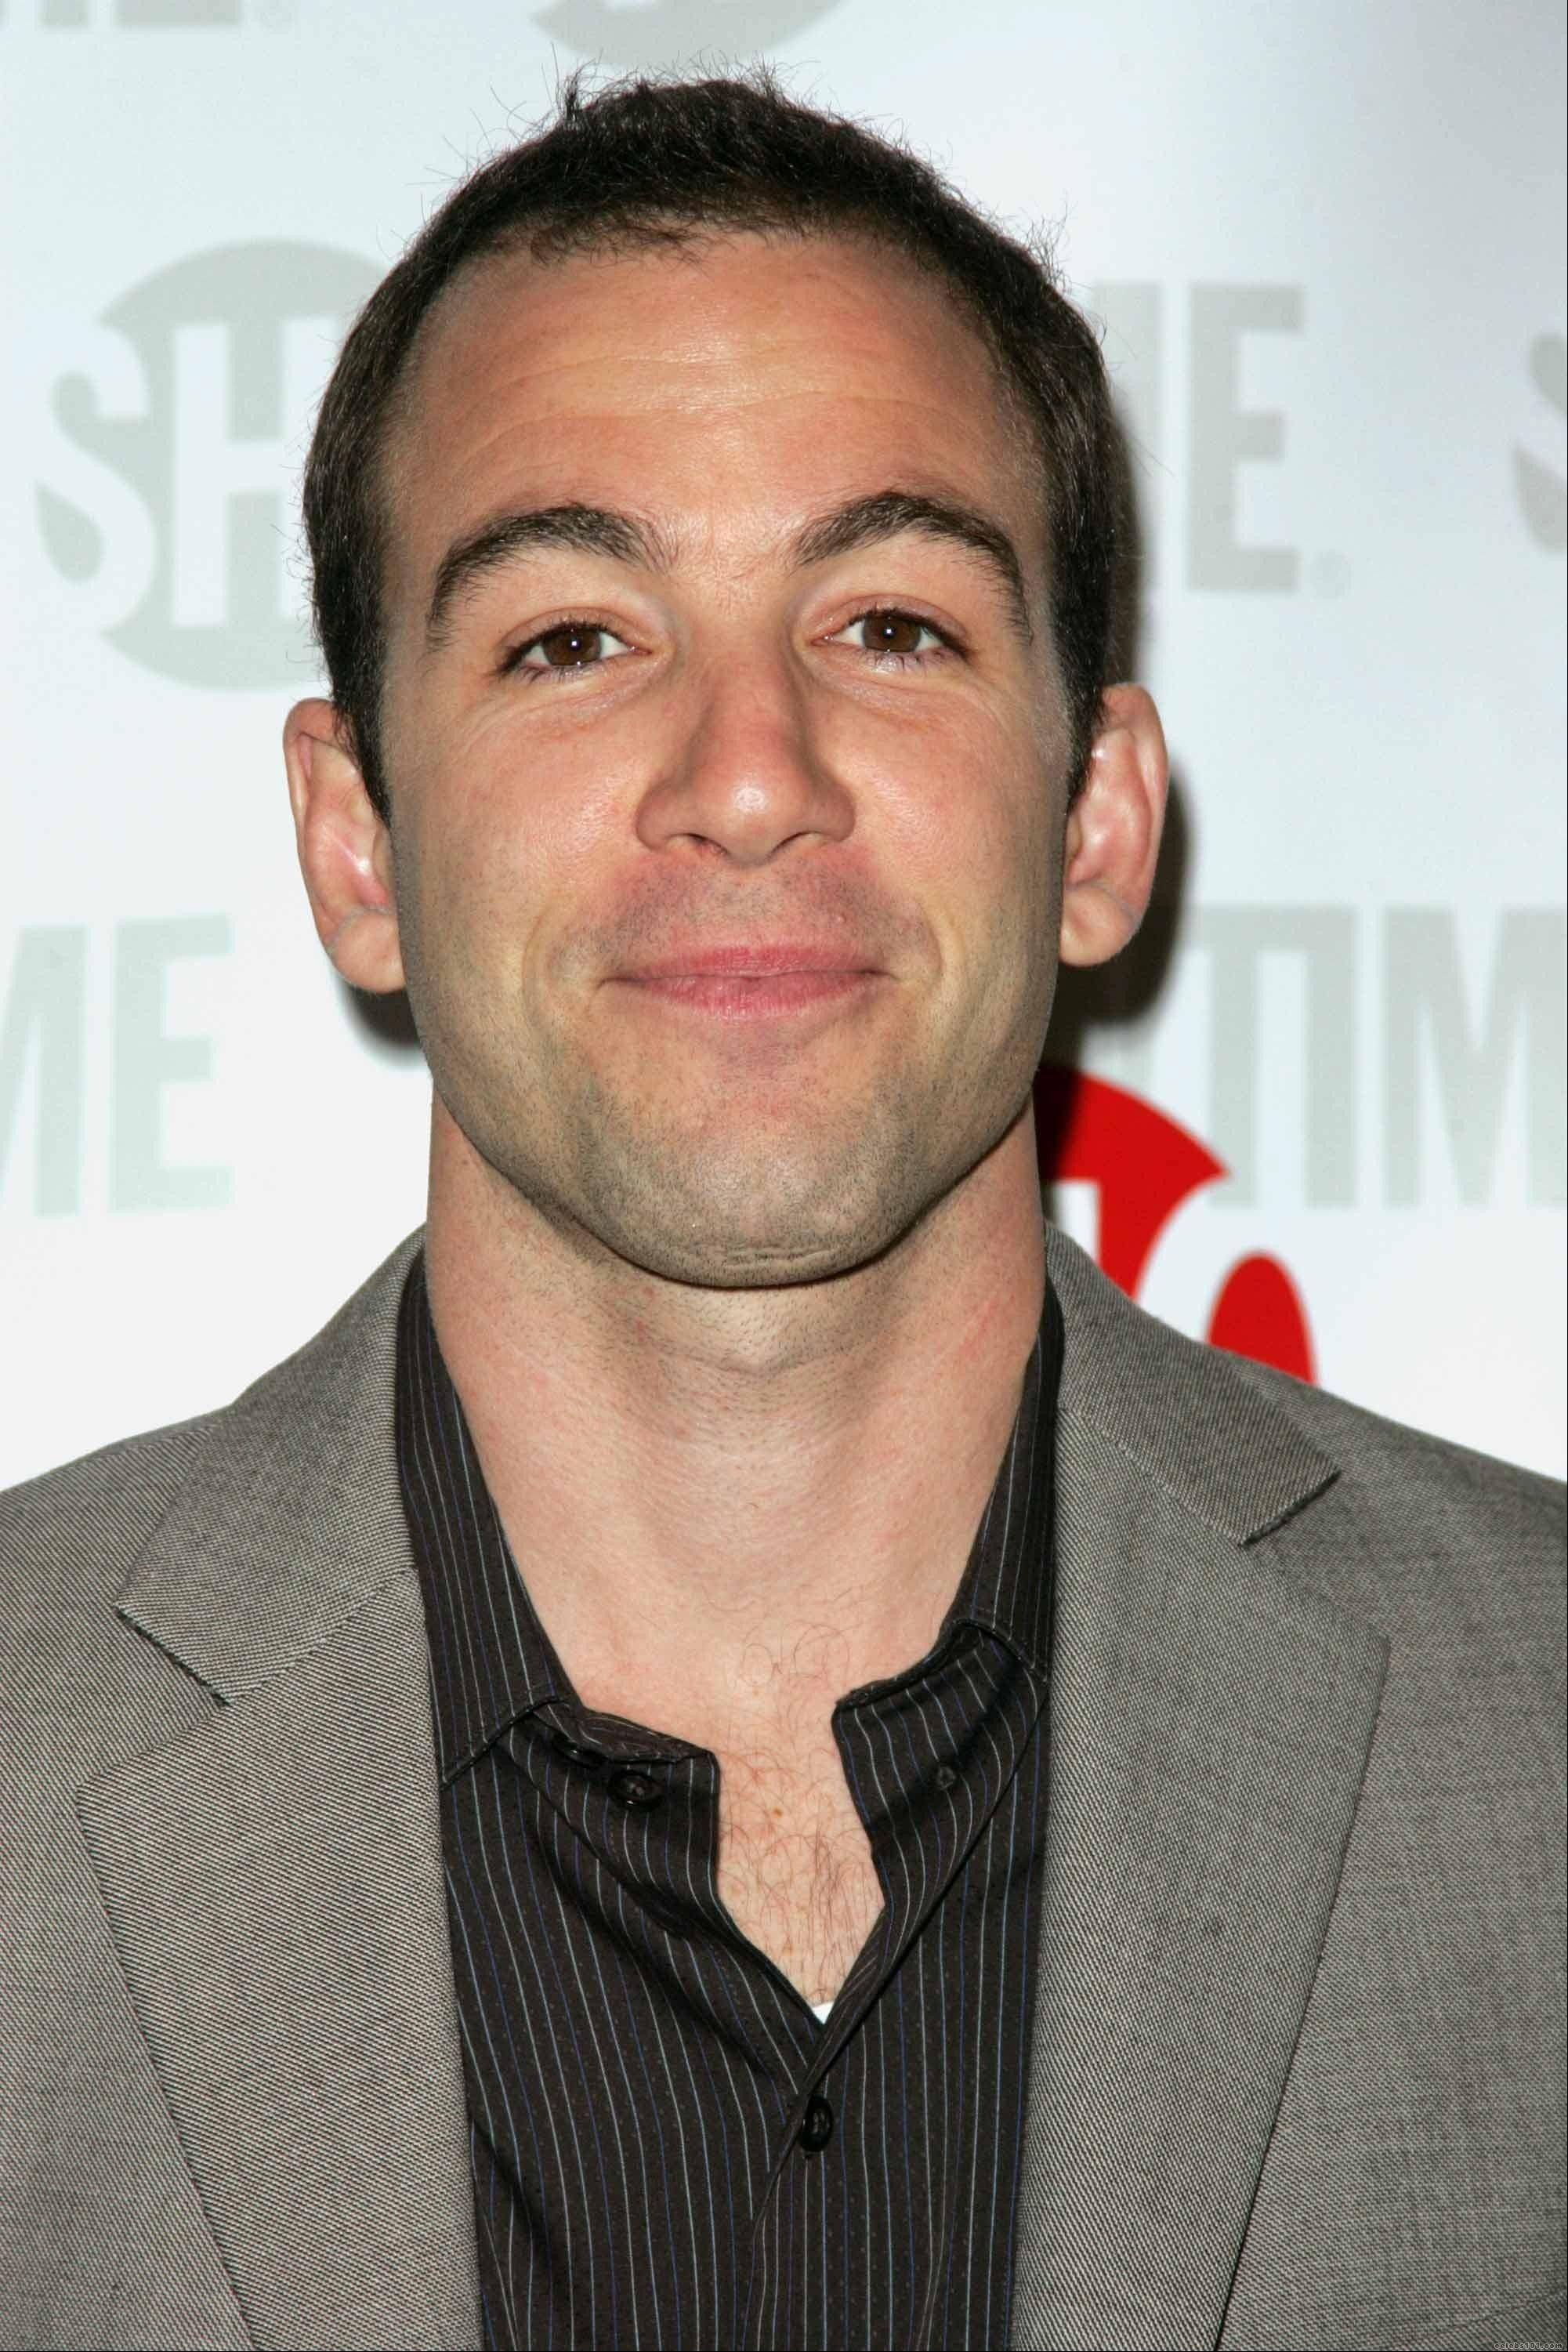 Comedian Bryan Callen is set to perform at the Improv Comedy Showcase in Schaumburg.